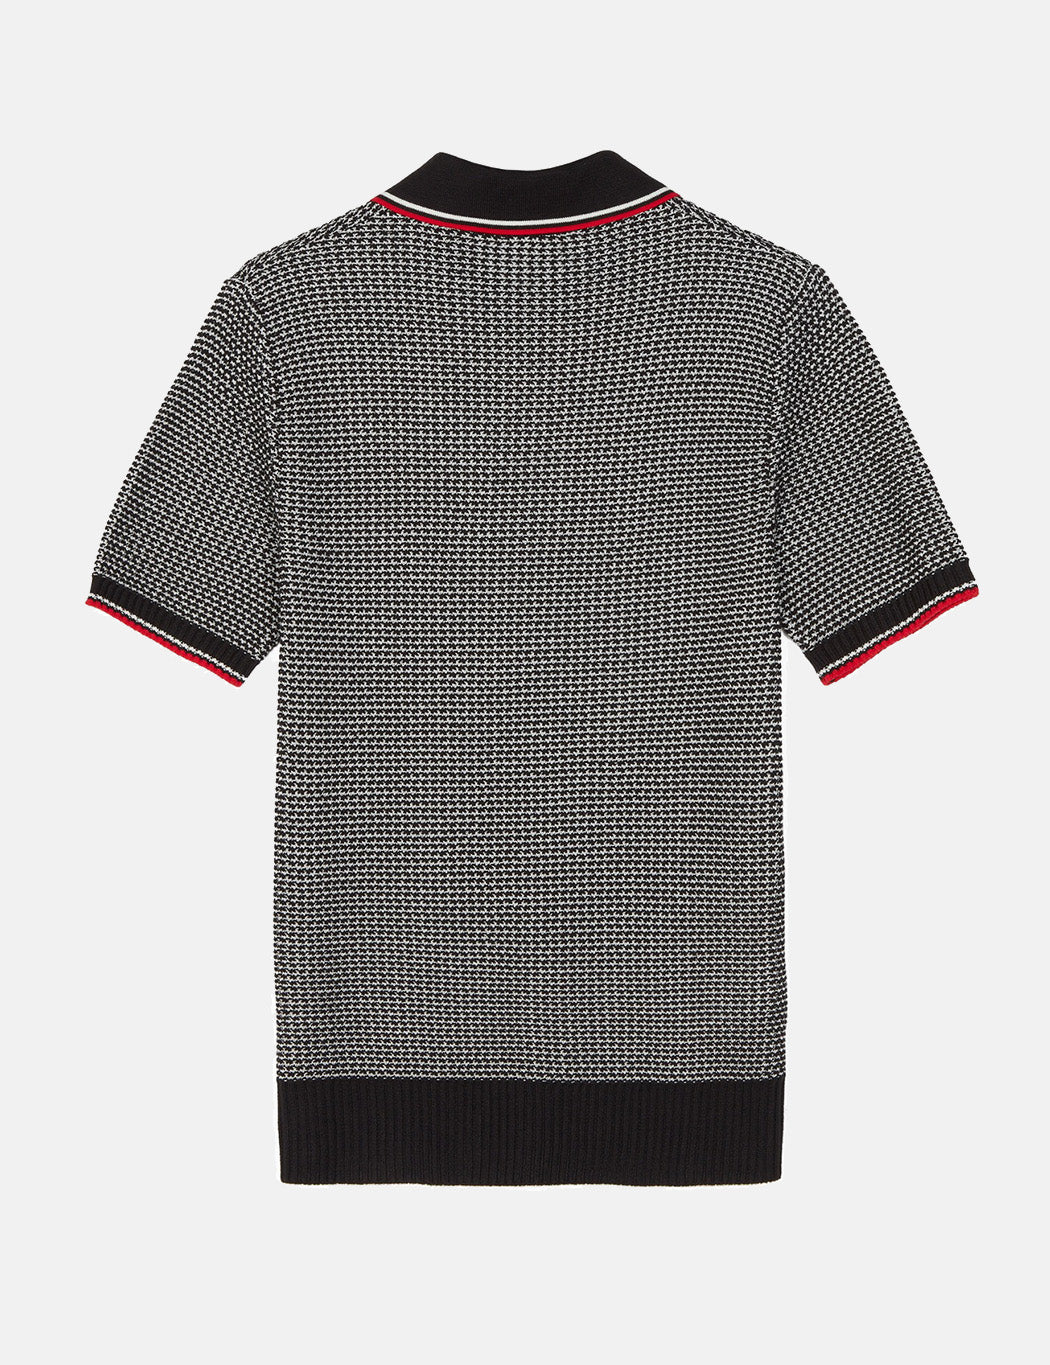 Fred Perry Texture Knit Shirt - Black